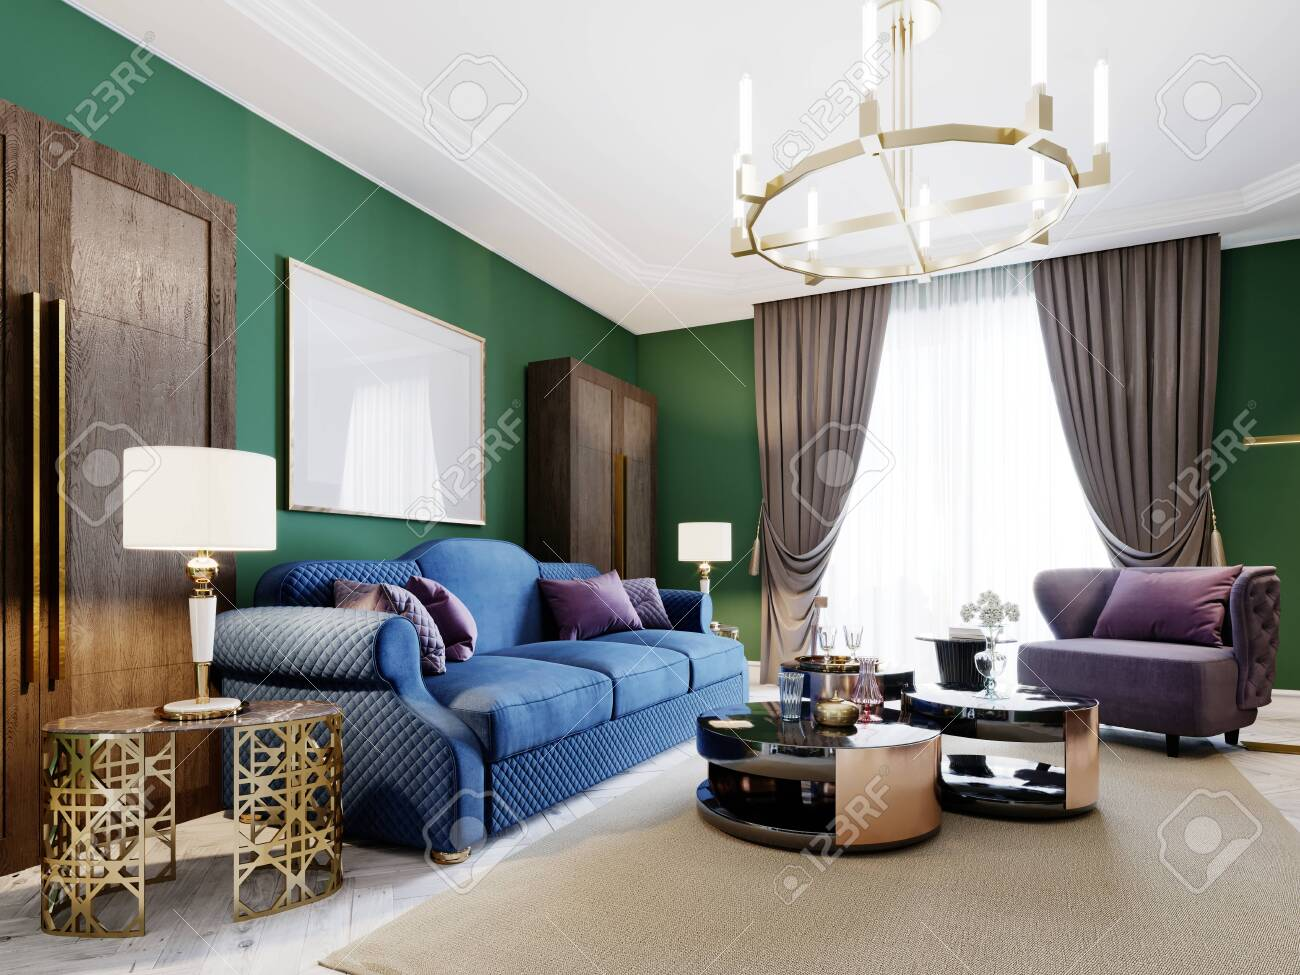 Living Room In Art Deco Style With Green Walls And Purple Upholstered Stock Photo Picture And Royalty Free Image Image 150526208